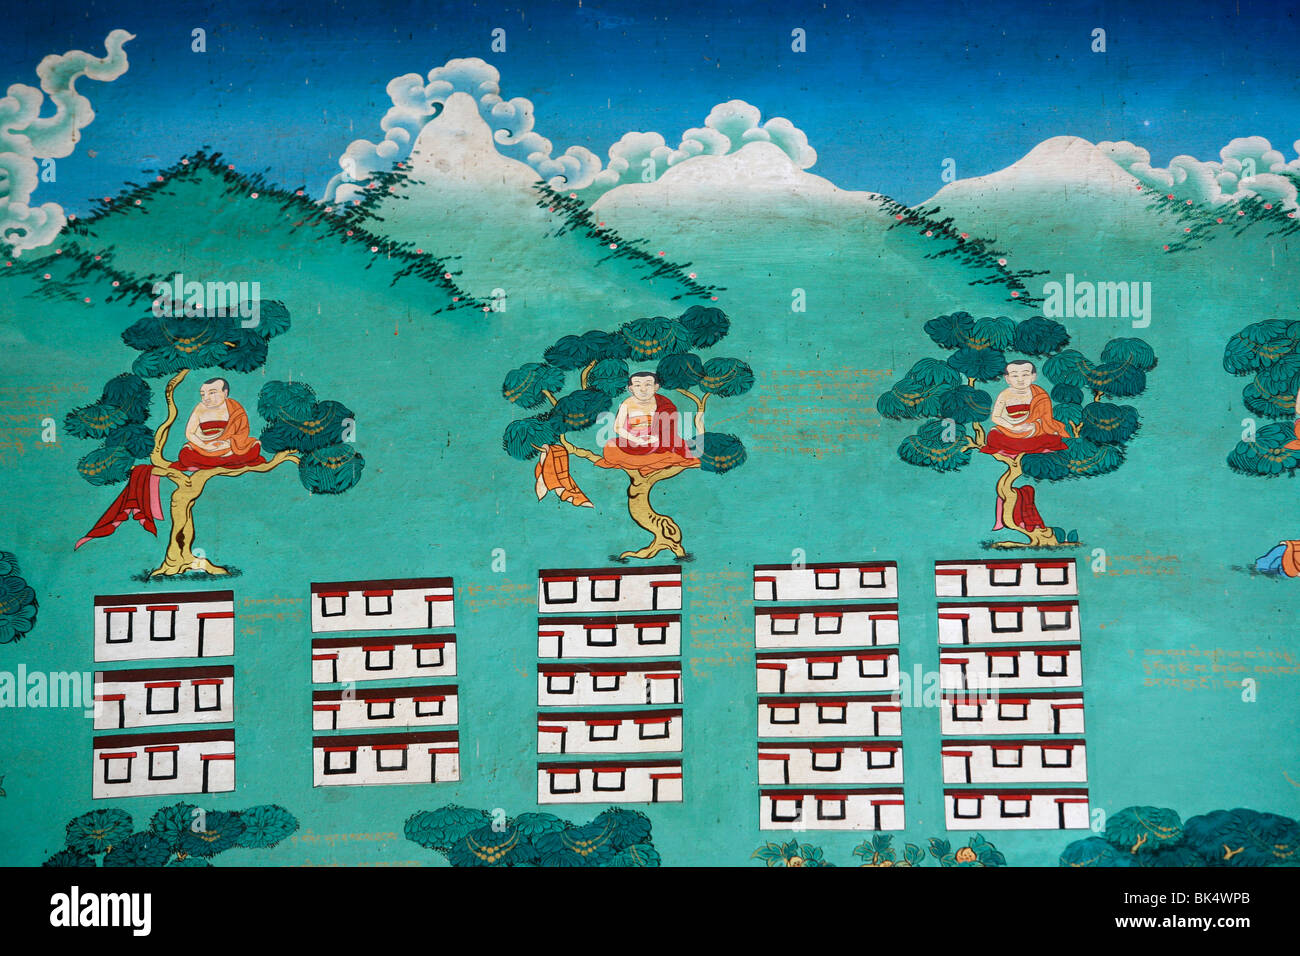 The Myth of Shangri La, Kopan monastery, Kathmandu, Nepal, Asia Stock Photo